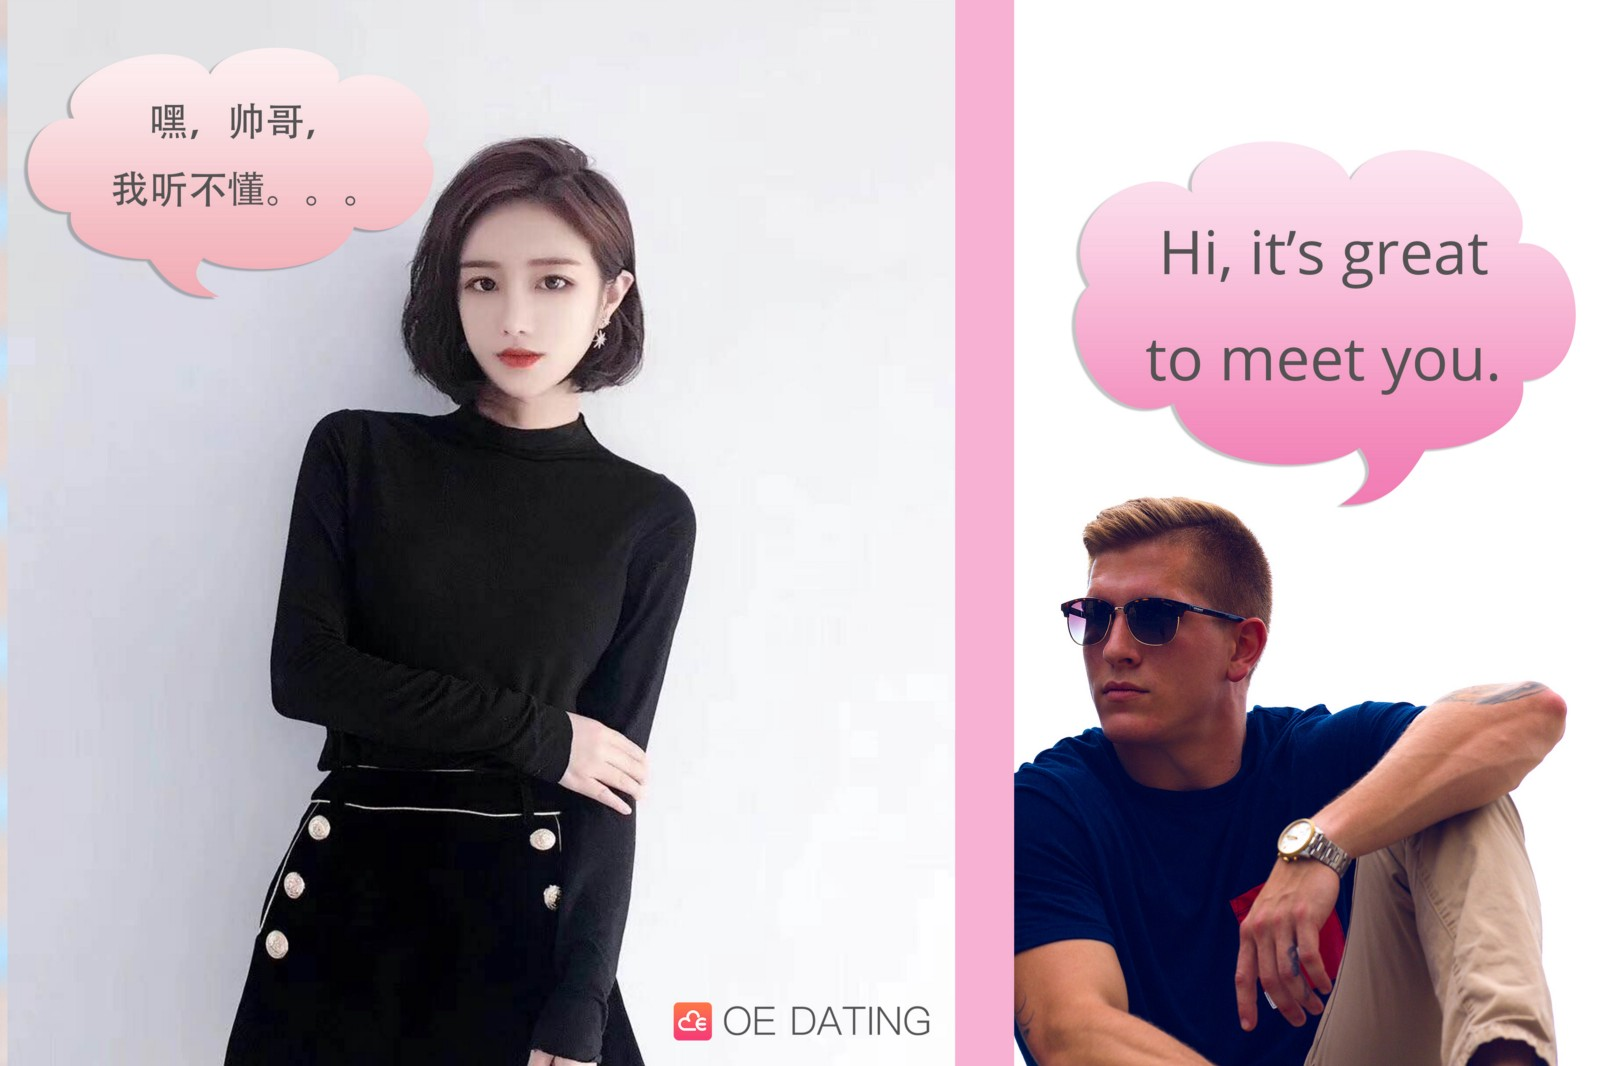 Don come dating online